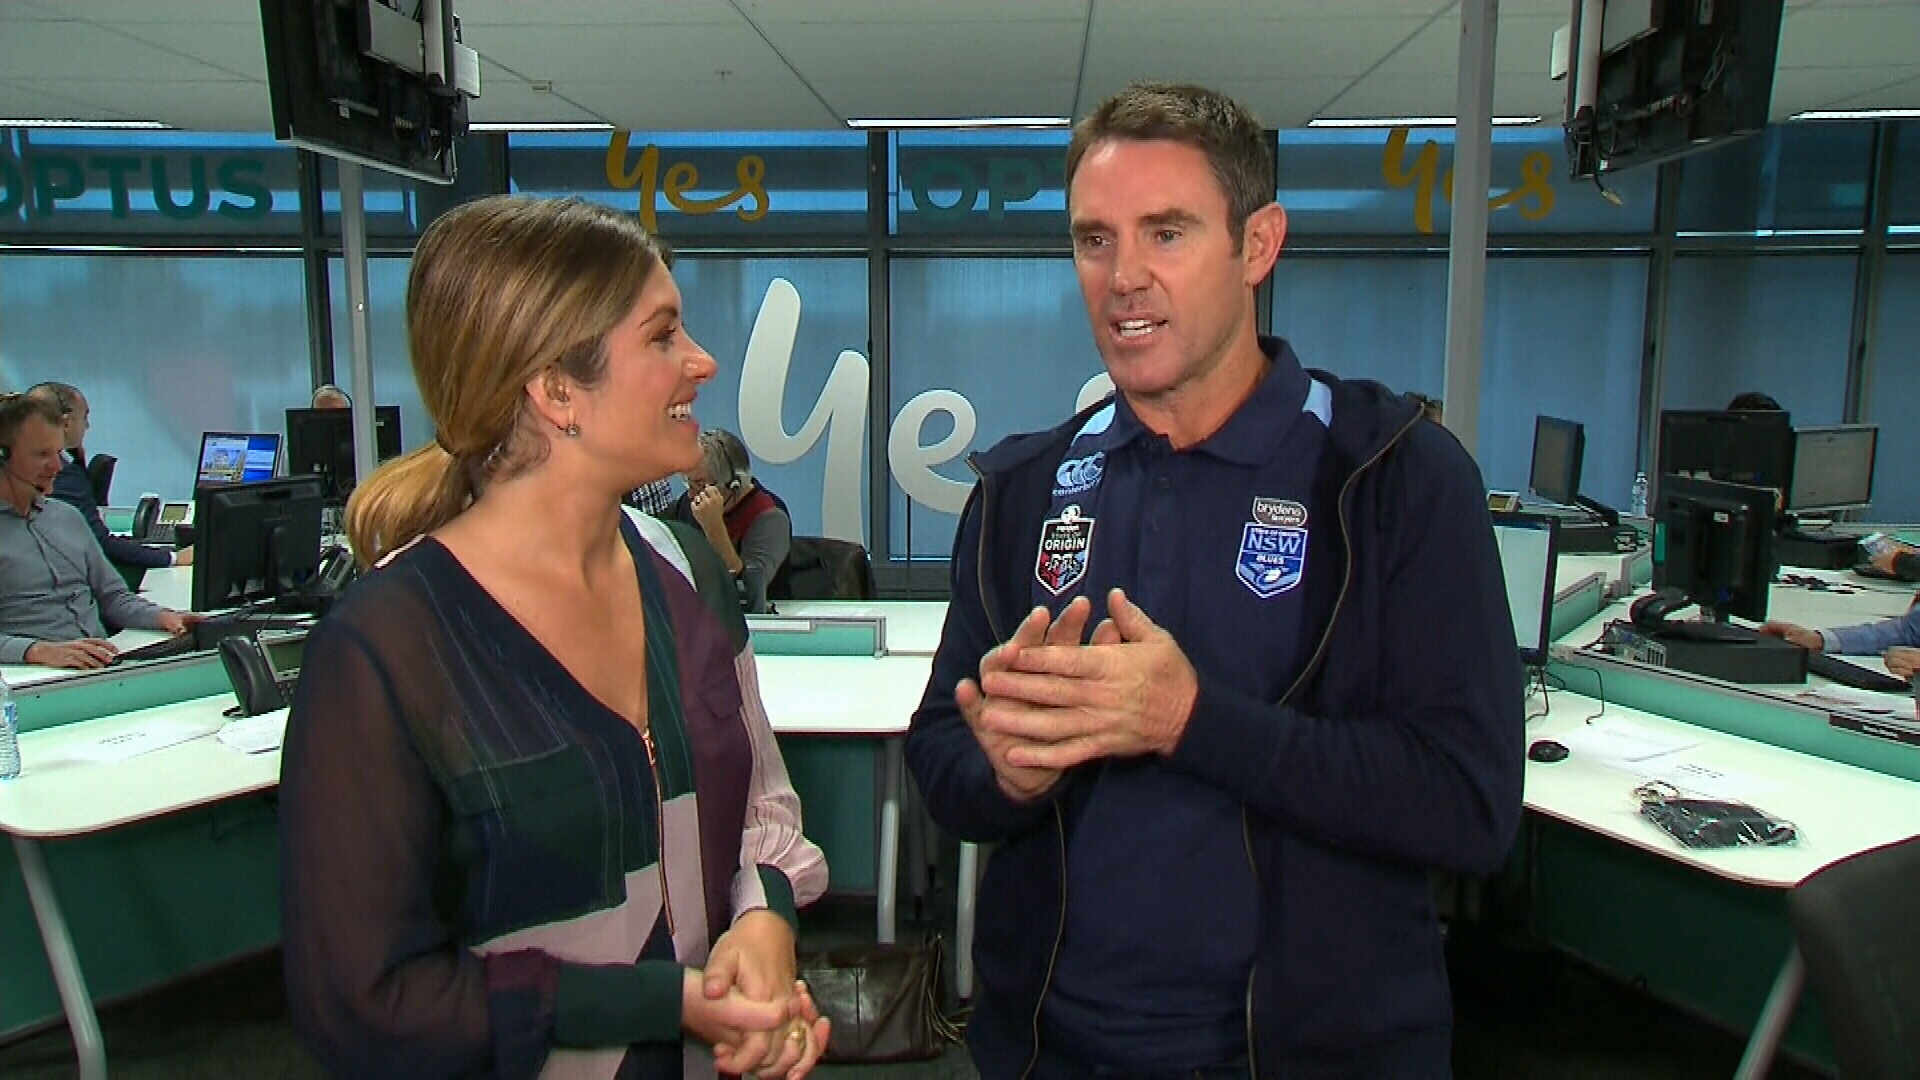 Brad Fittler joins Natalia at the Optus call centre